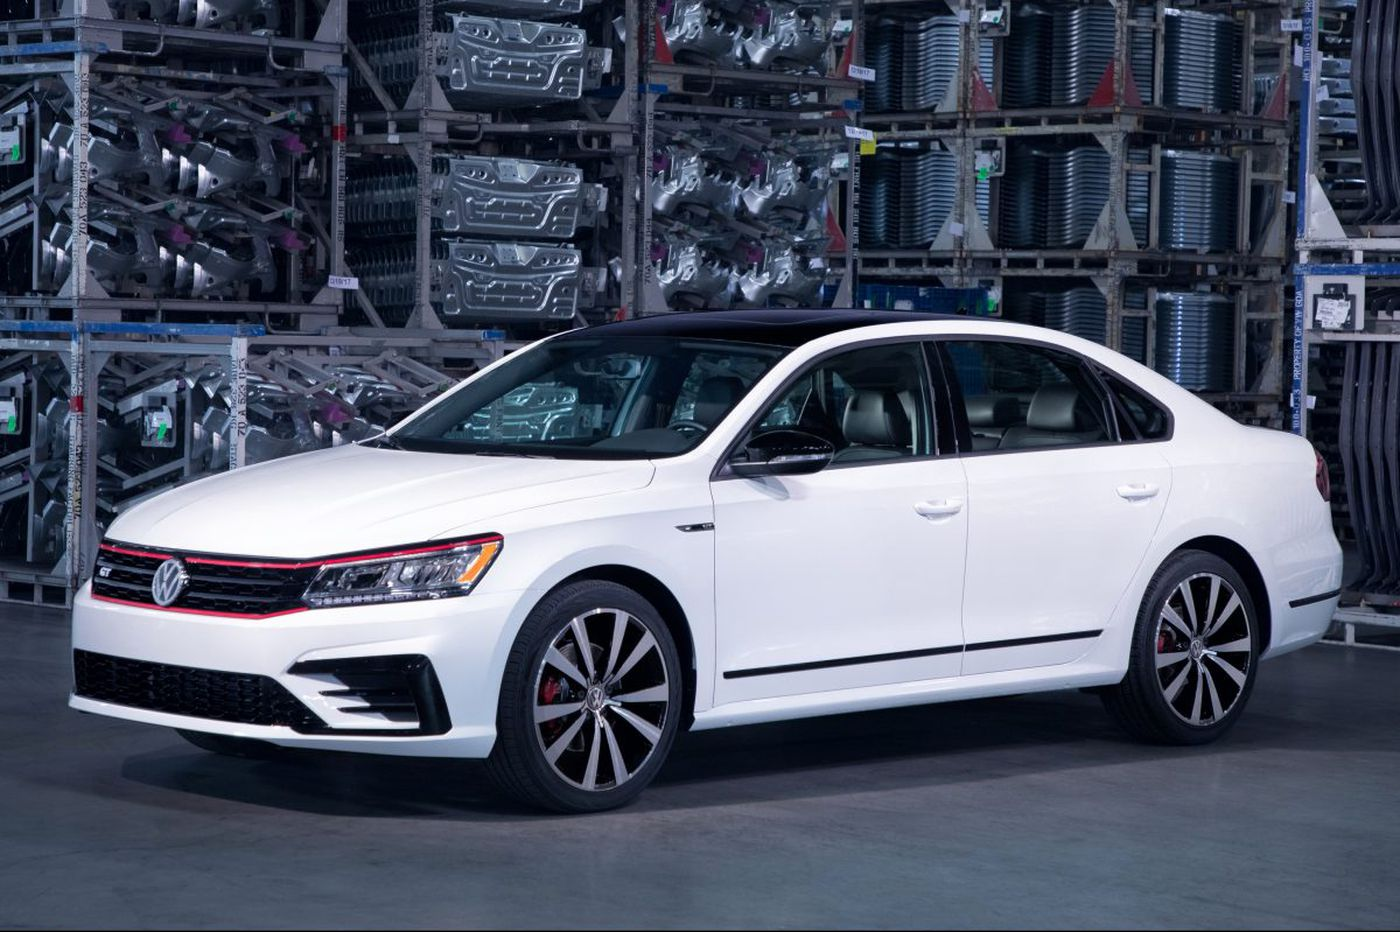 Volkswagen offers a roomy 2018 Passat GT that's fun to play with